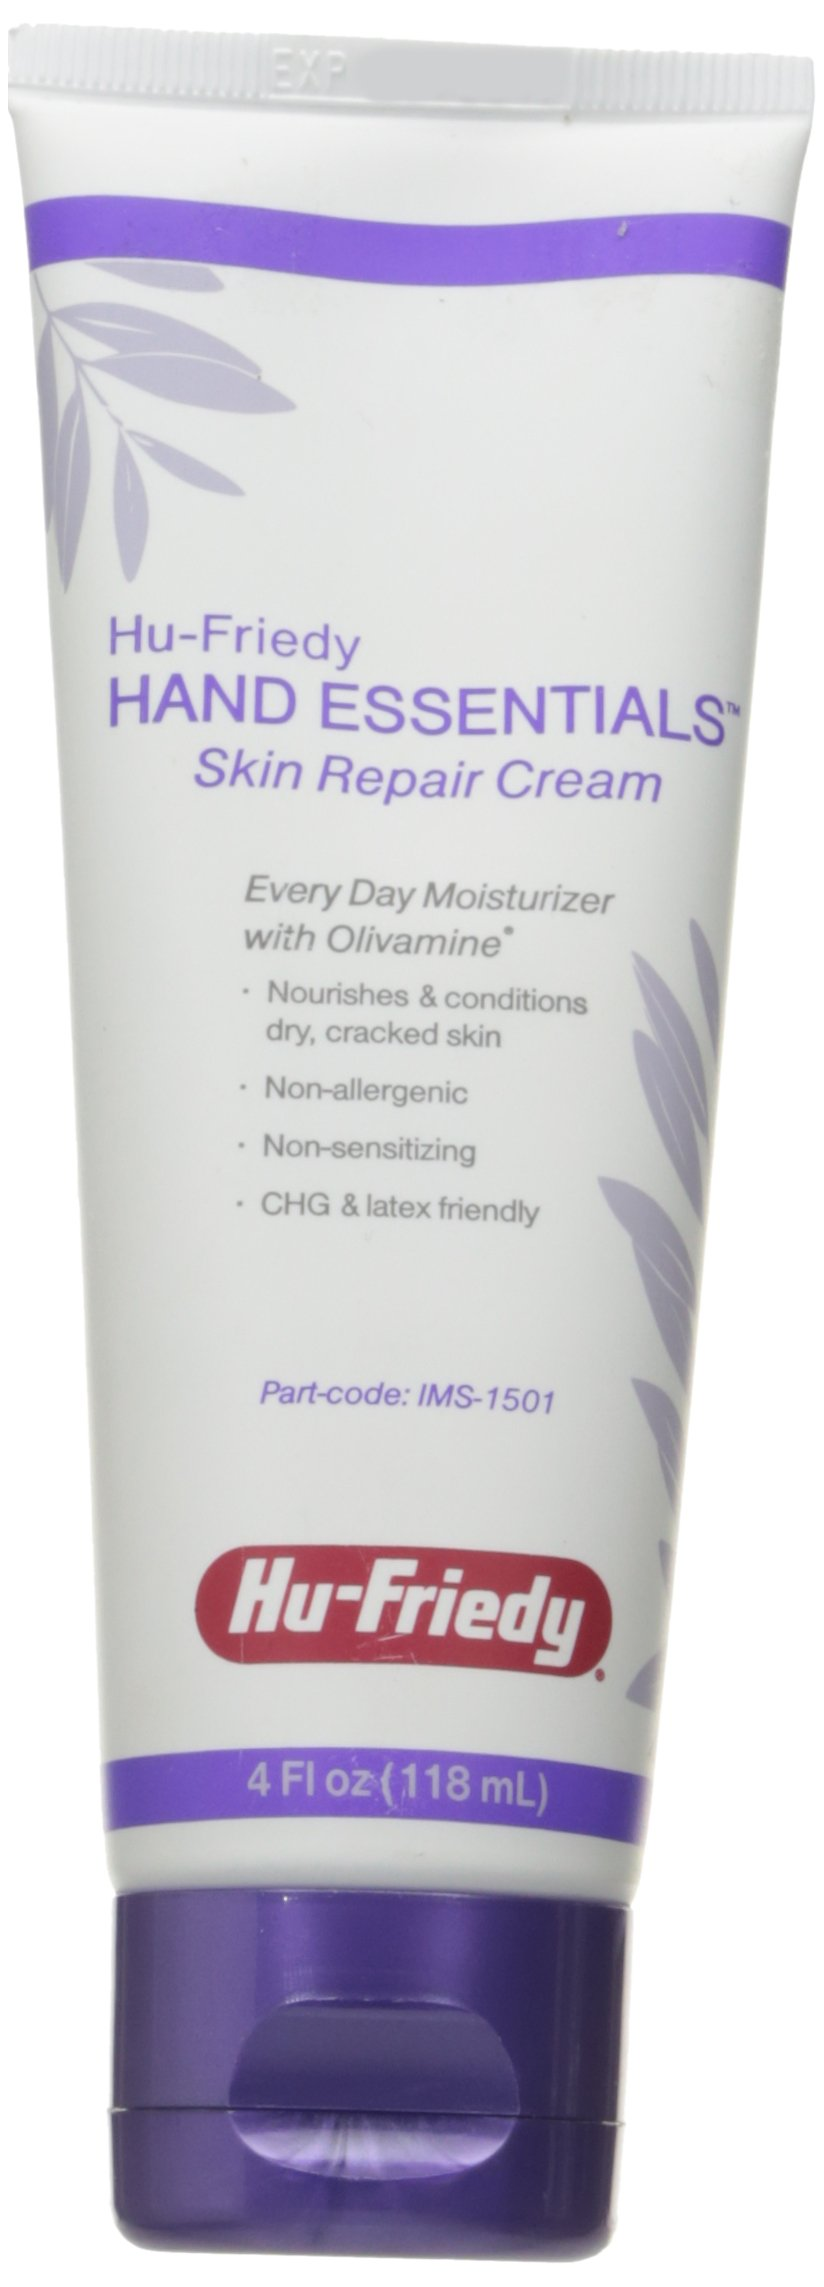 Hu-Friedy IMS-1501 Hand Essentials Skin Repair Cream, 4 fl oz